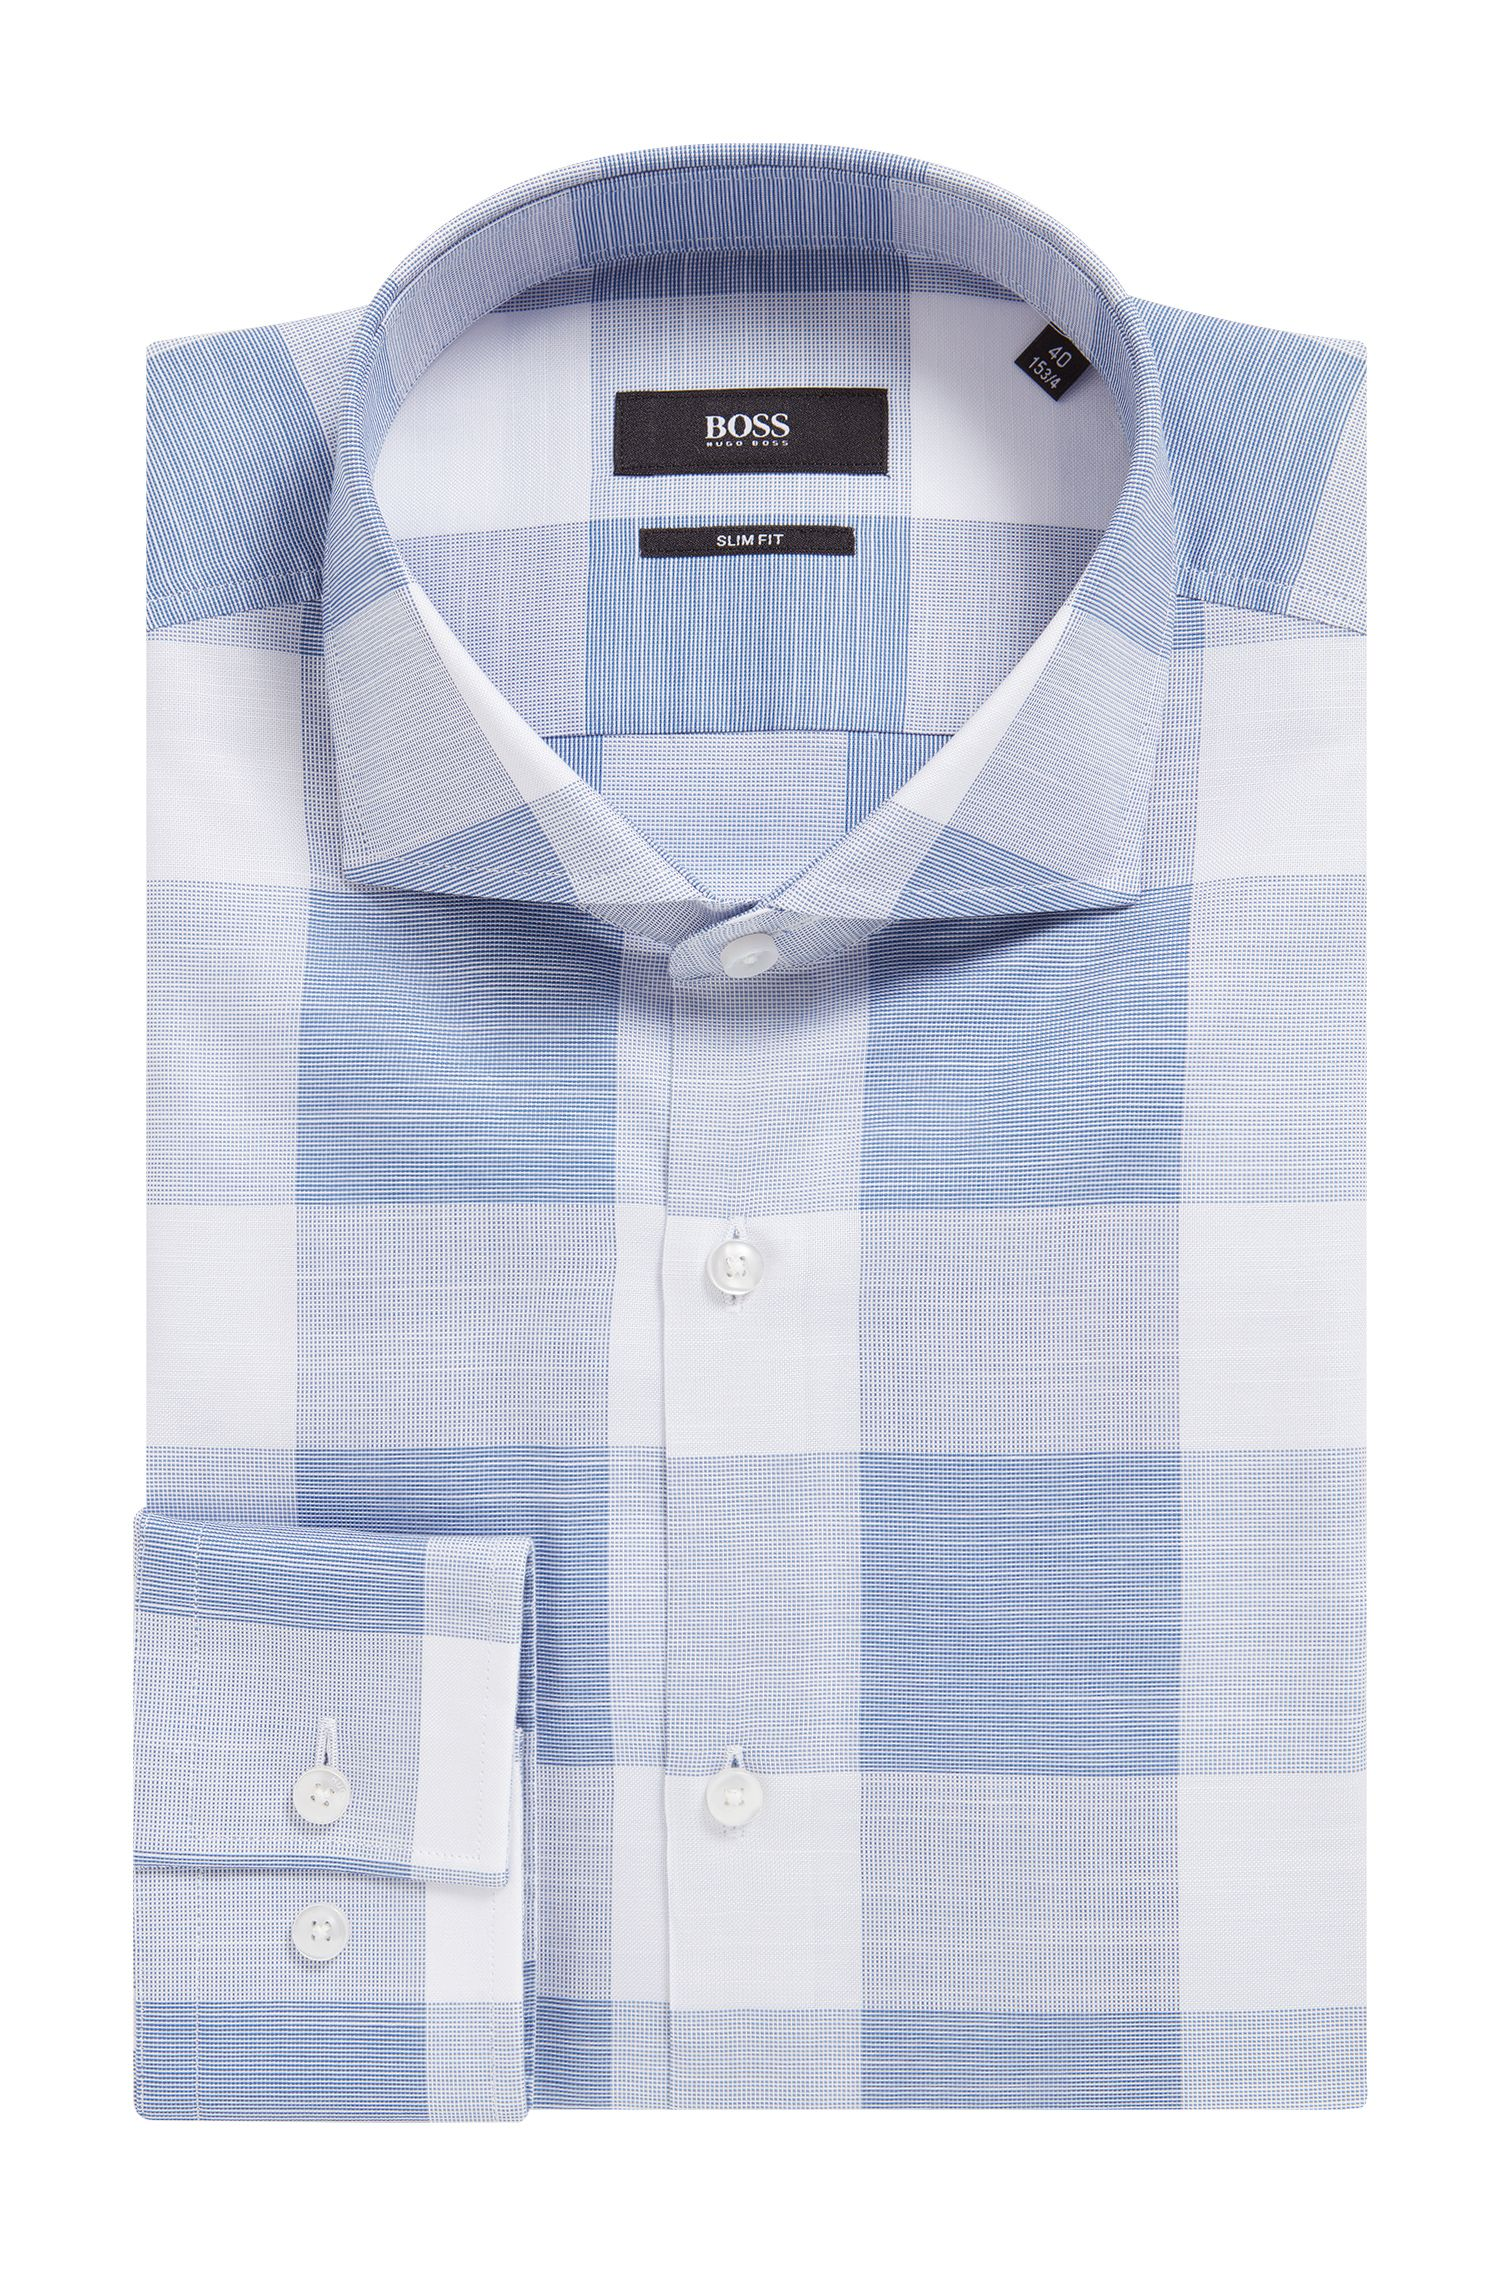 Buffalo Check Italian Cotton Dress Shirt, Slim Fit | Jason